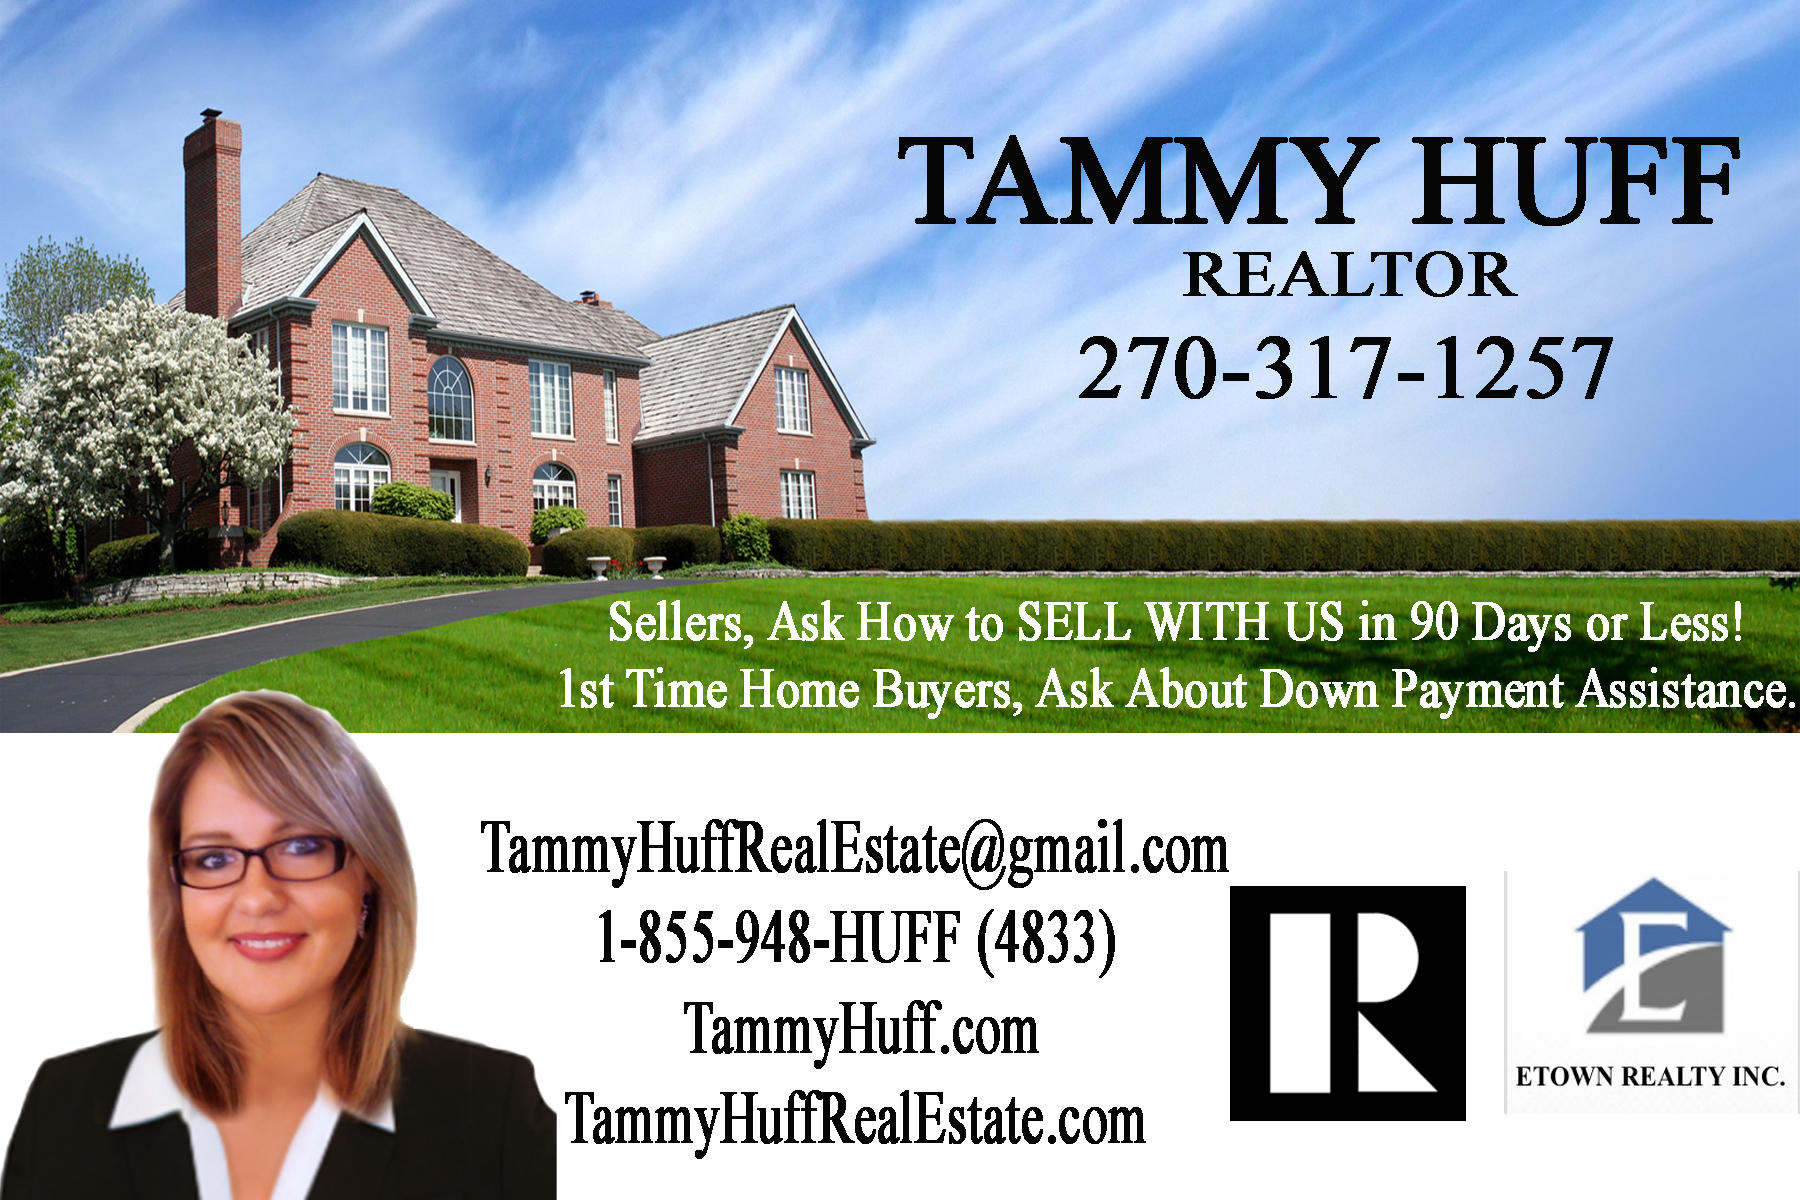 Tammy huff etown realty elizabethtown kentucky ky for Huff realty